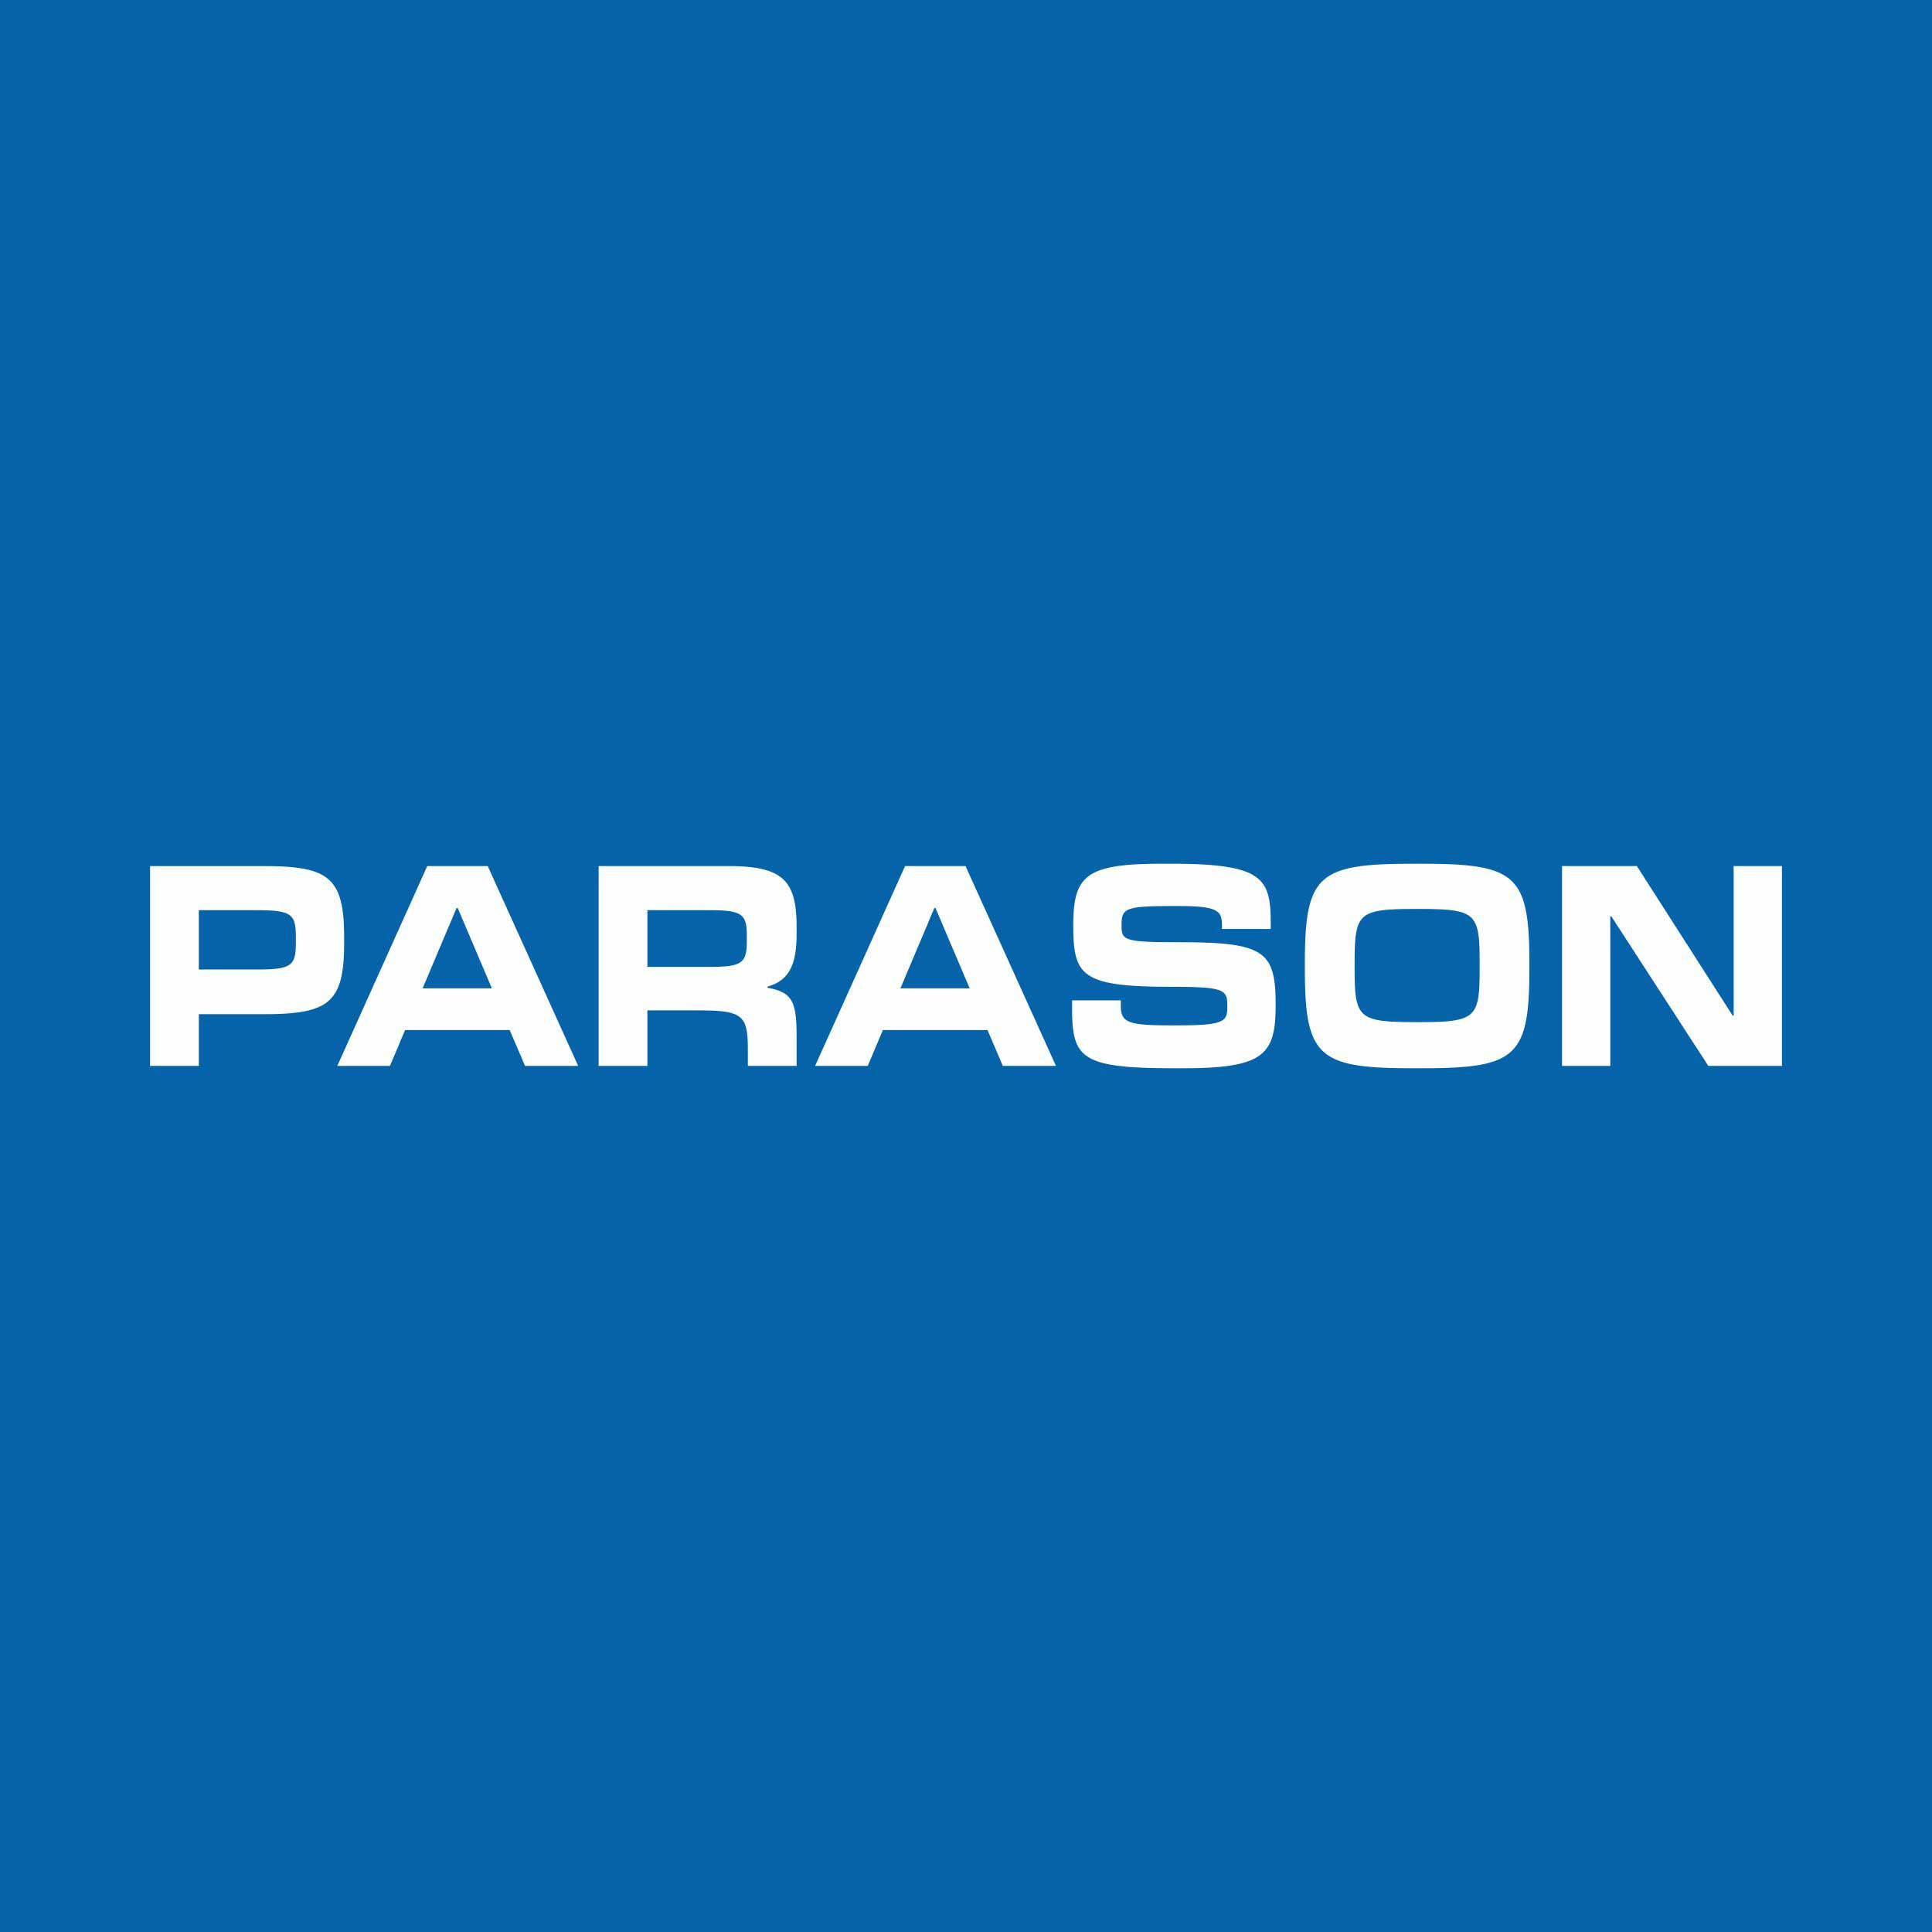 Parason Machinery India Pvt Ltd